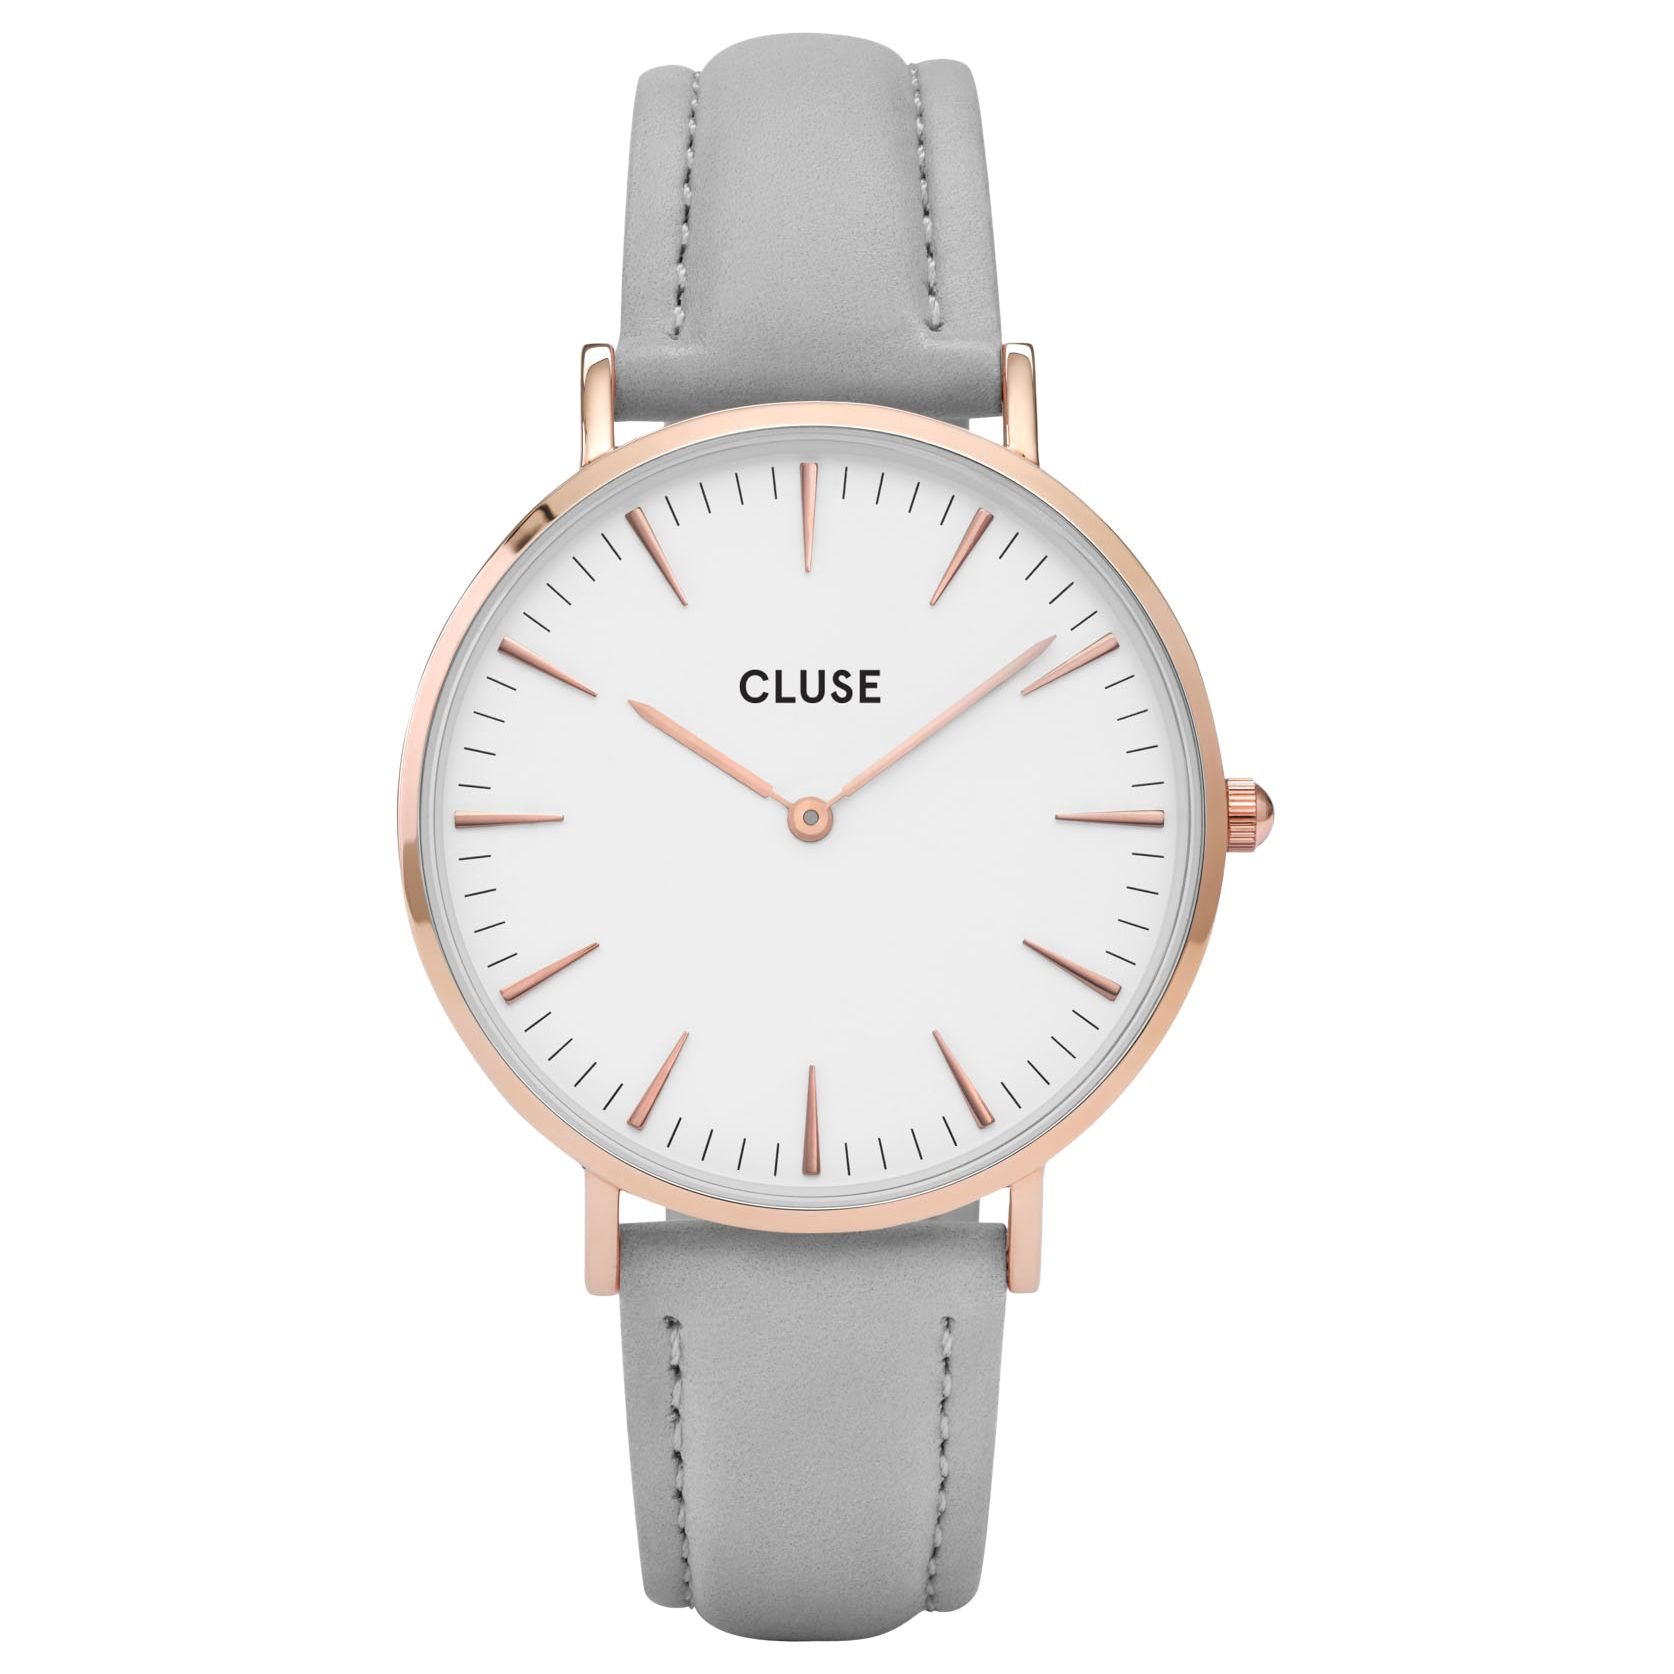 Leather Strap Rose Gold Watch Cluse Cl18015 Women S La Boheme Rose Gold Leather Strap Watch Light Grey White